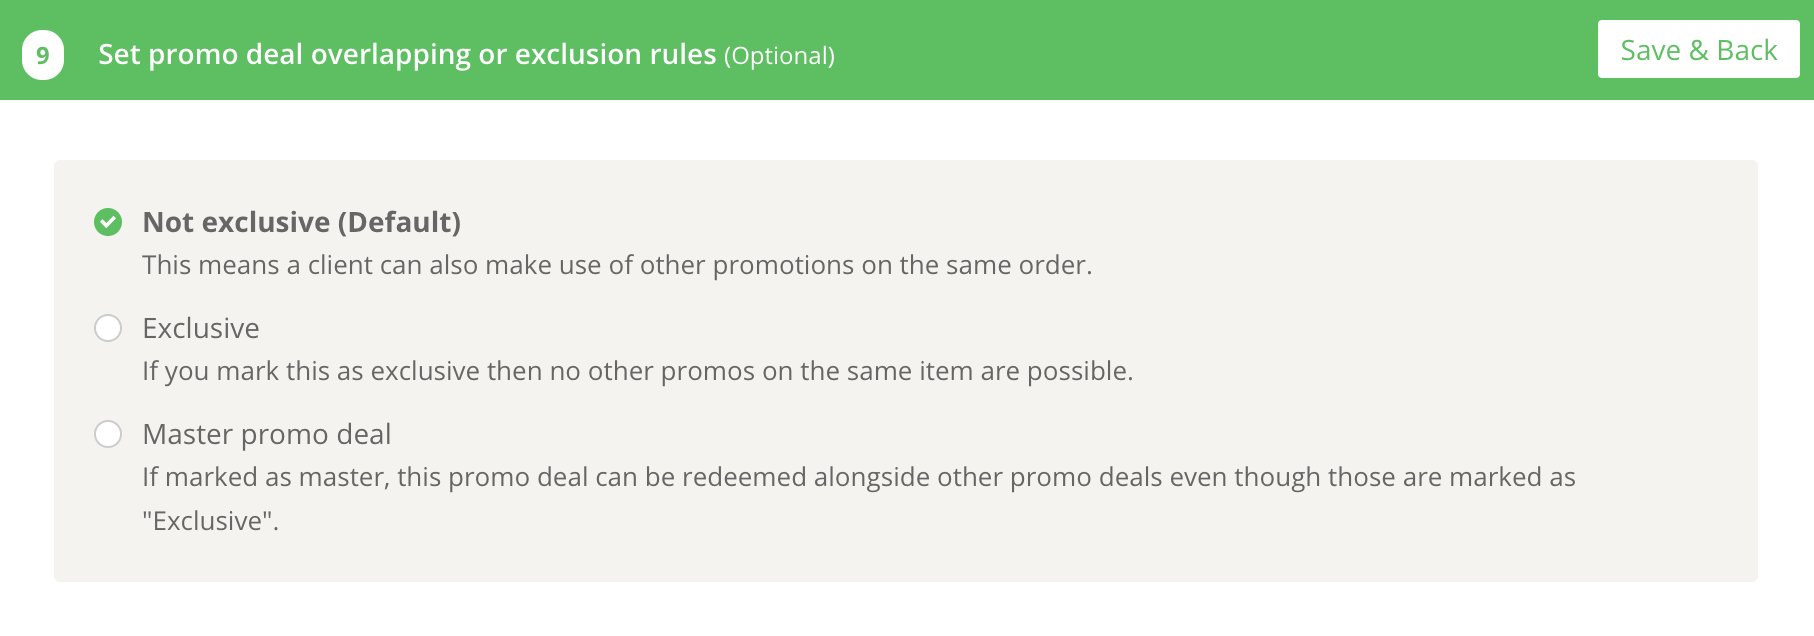 Promotion settings and scenarios 7